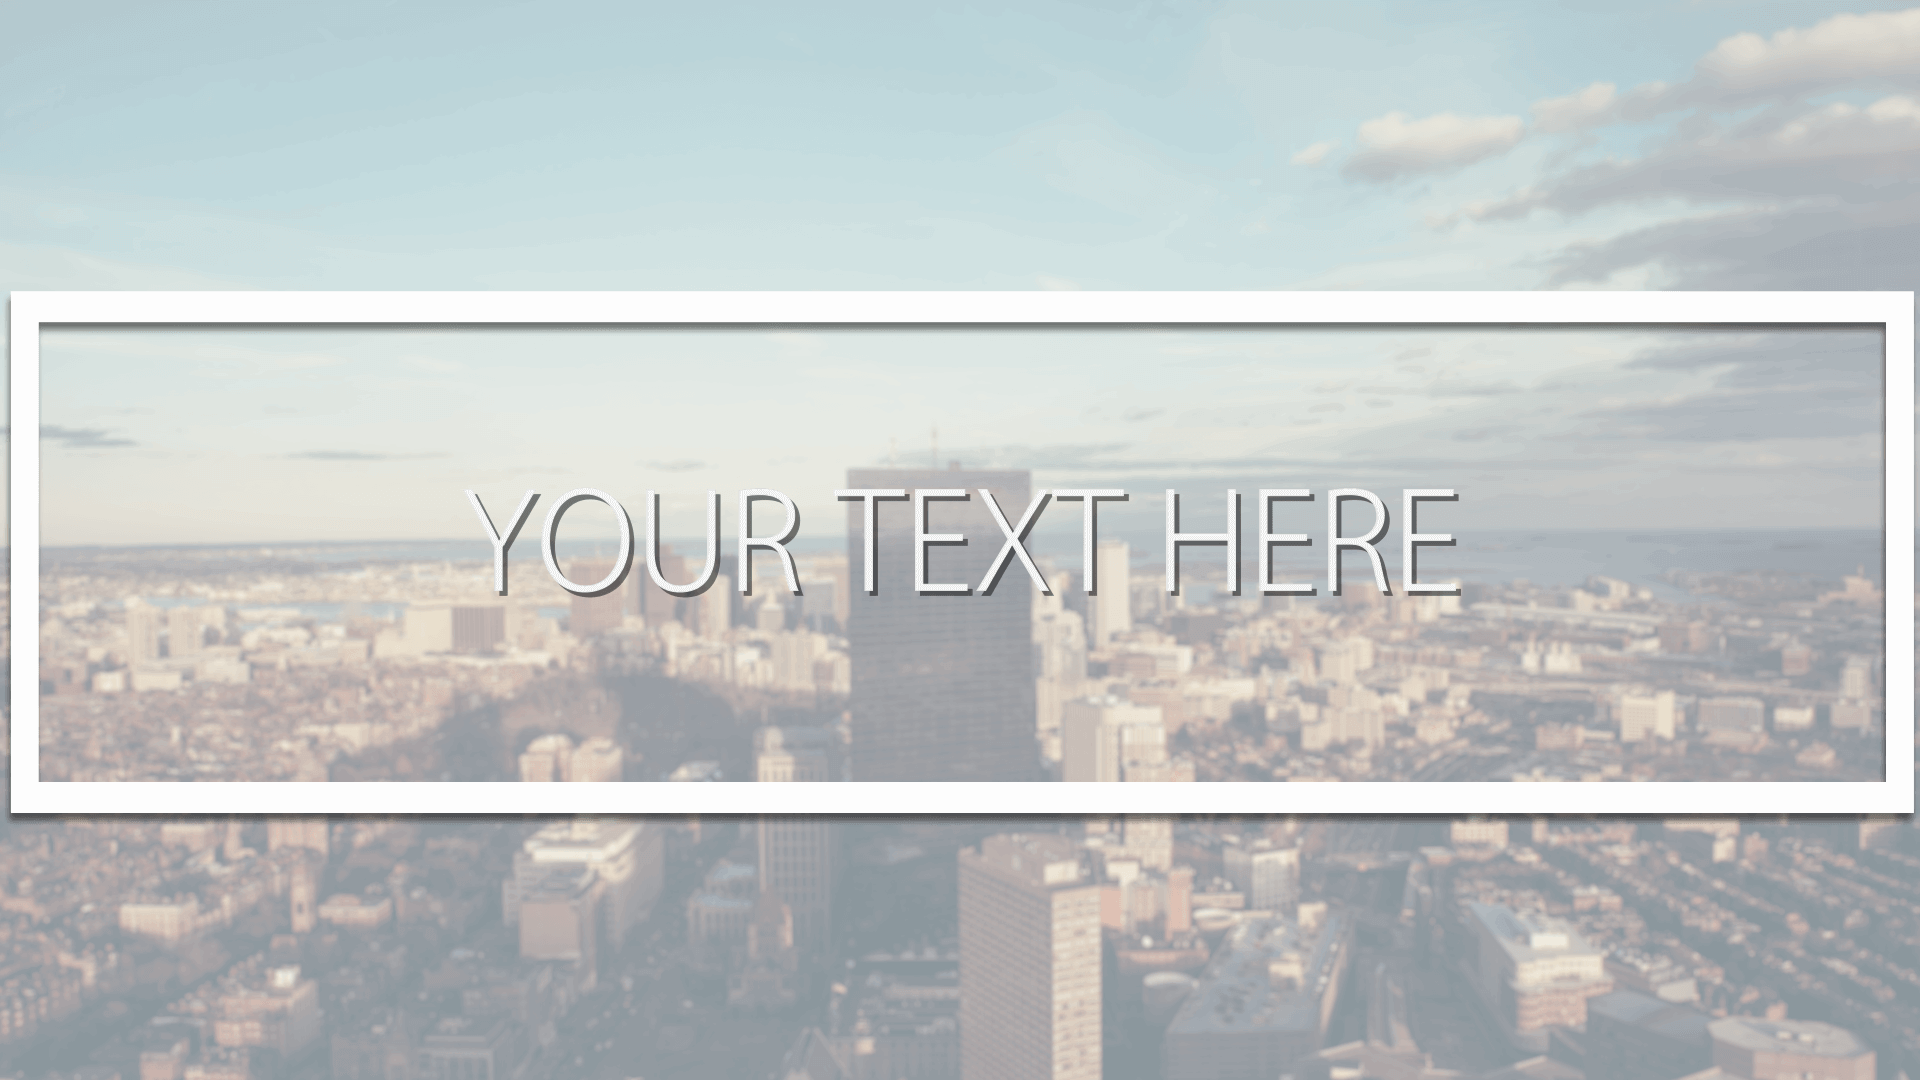 Customize the text for Modern Metro - Logo to view your free intro movie.